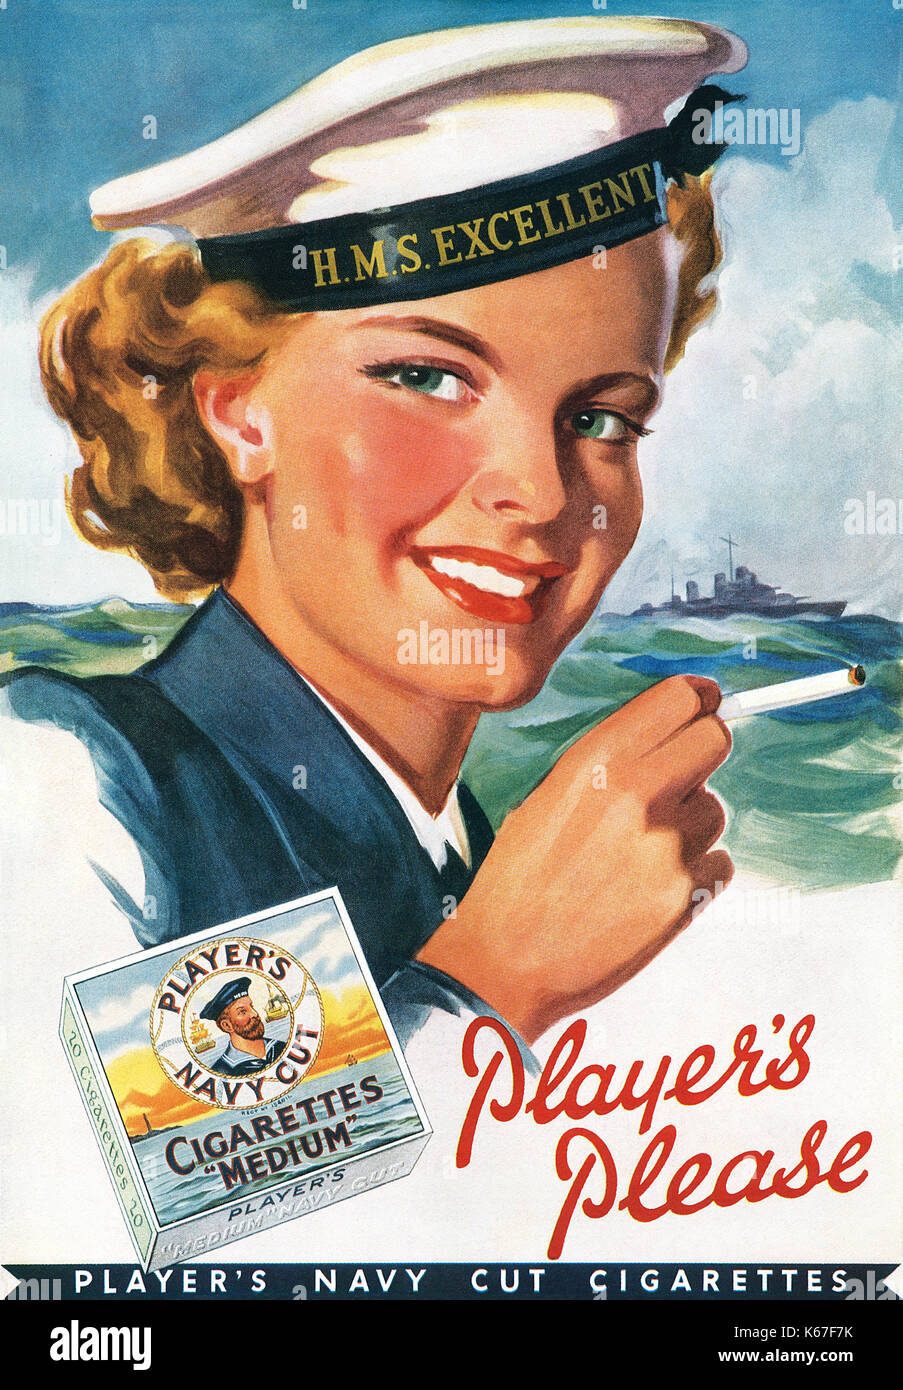 Players Navy Cut Cigarettes Stock Photos & Players Navy ...